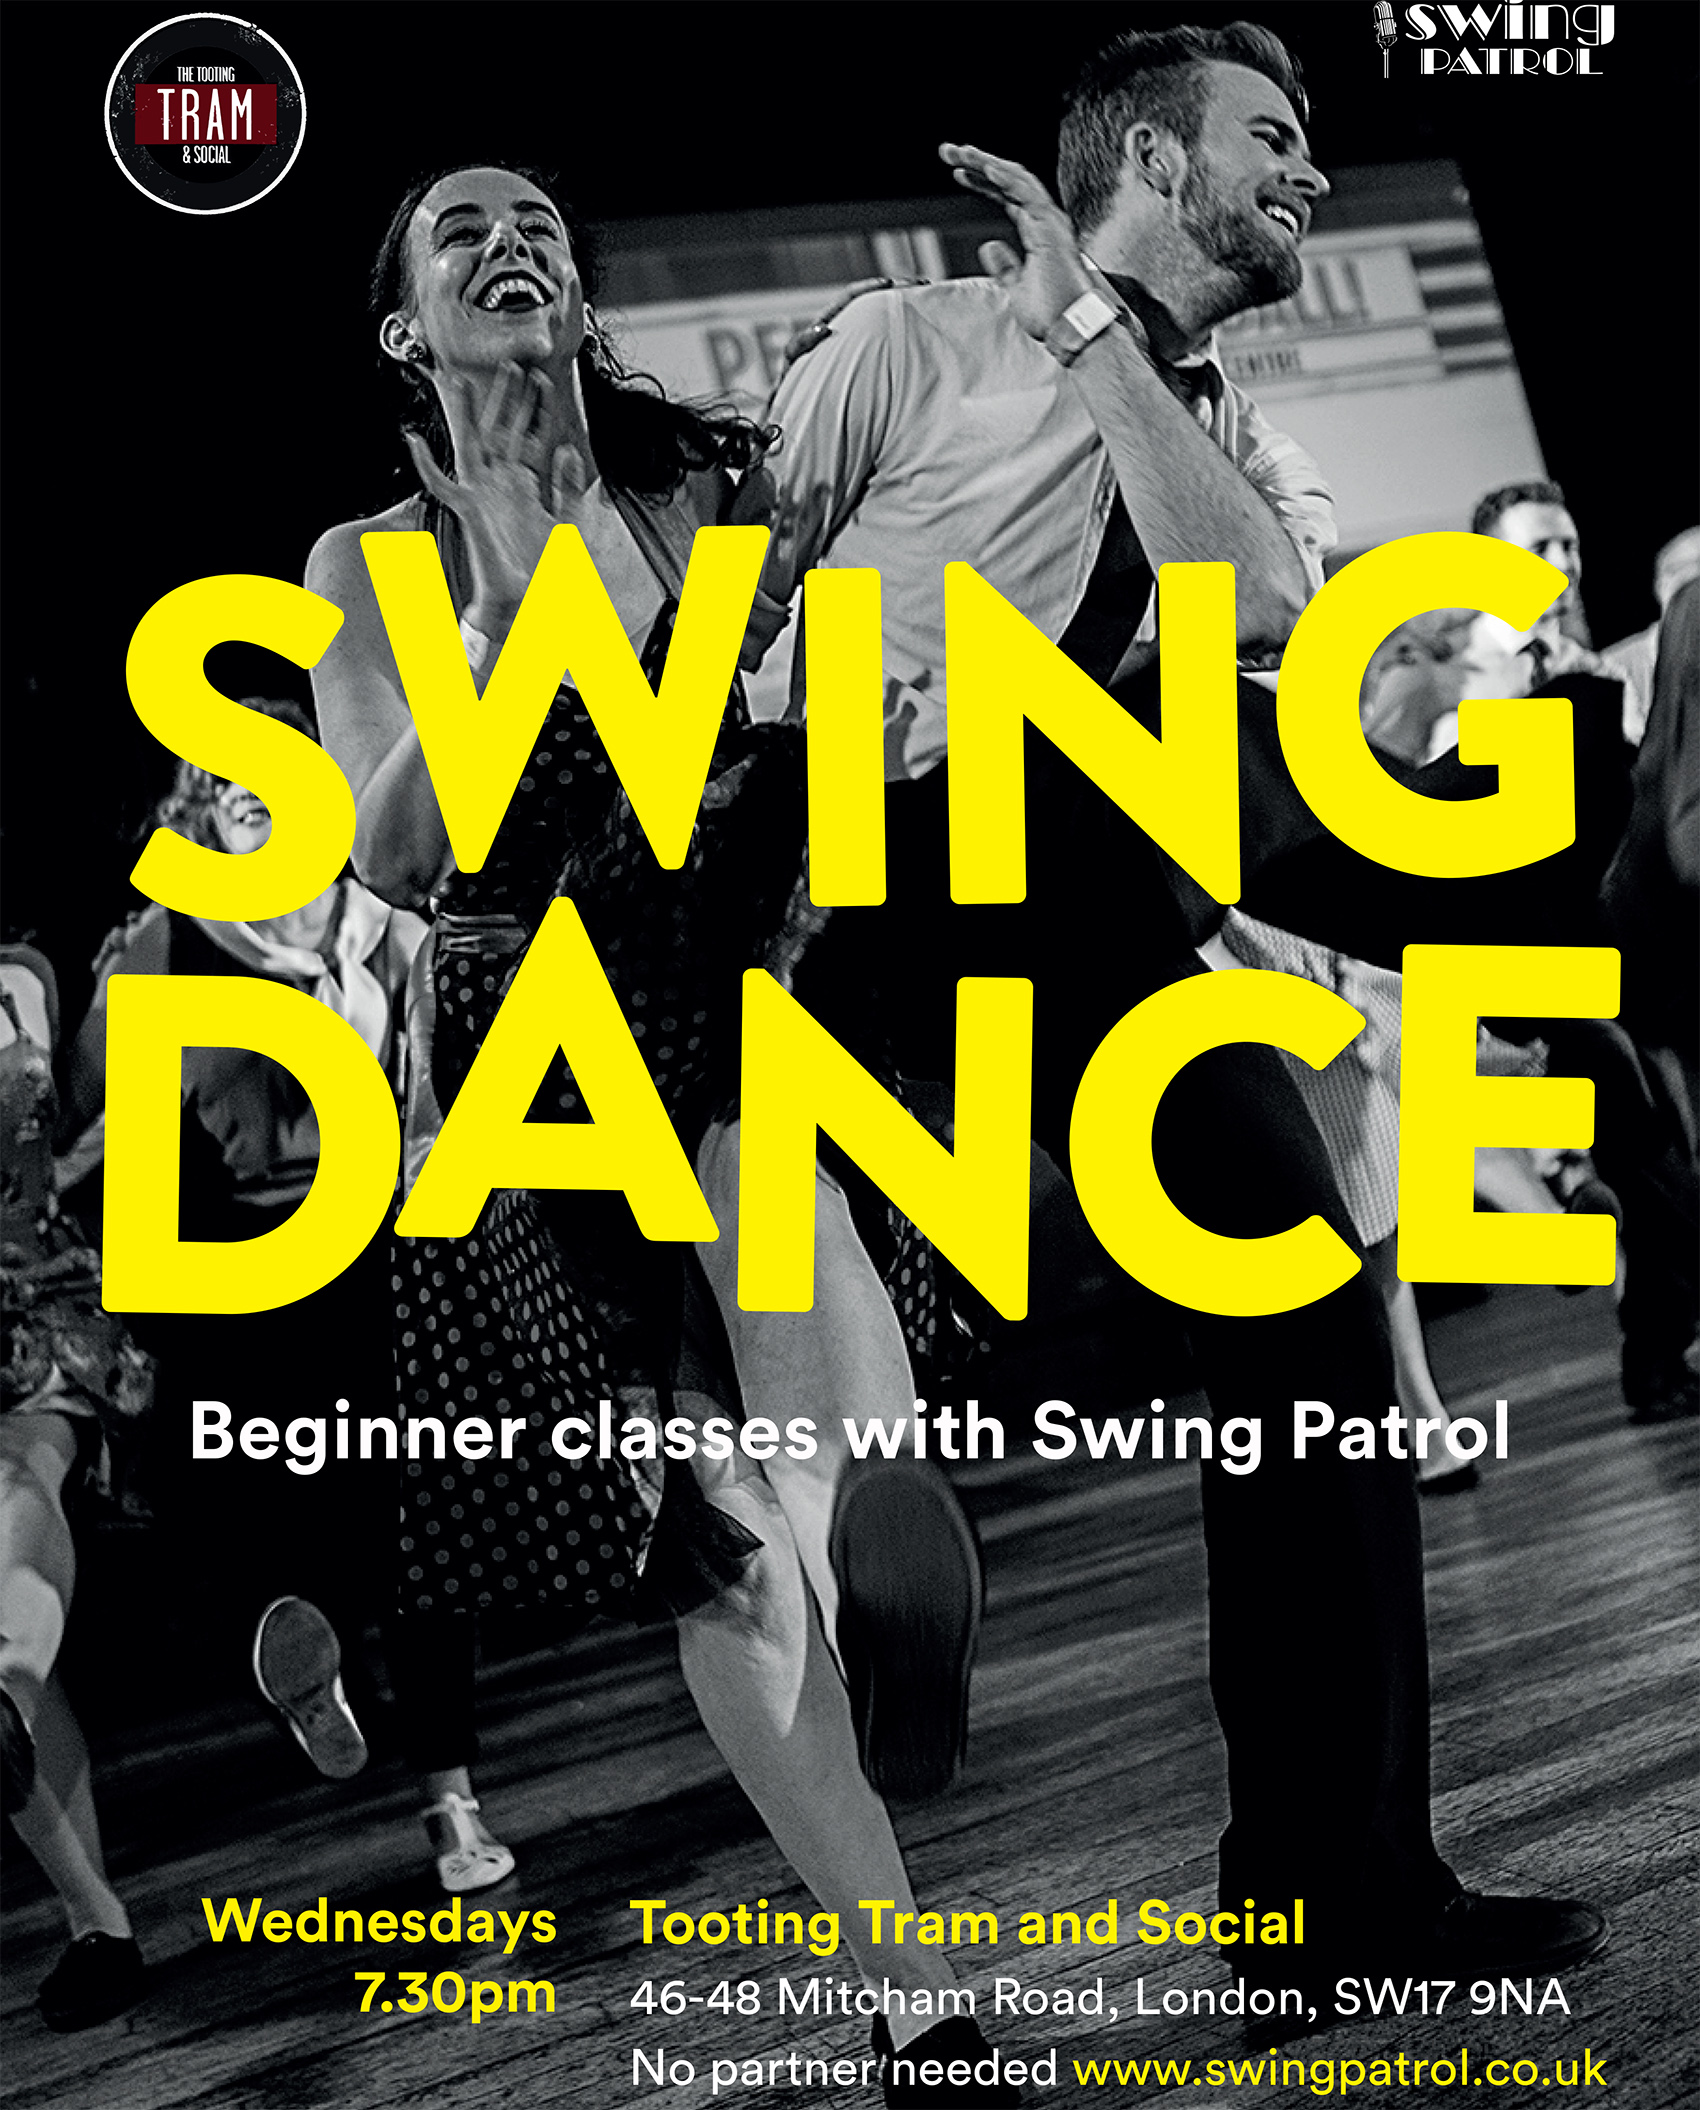 Swing Patrol: Amateur Swing Dance Classes